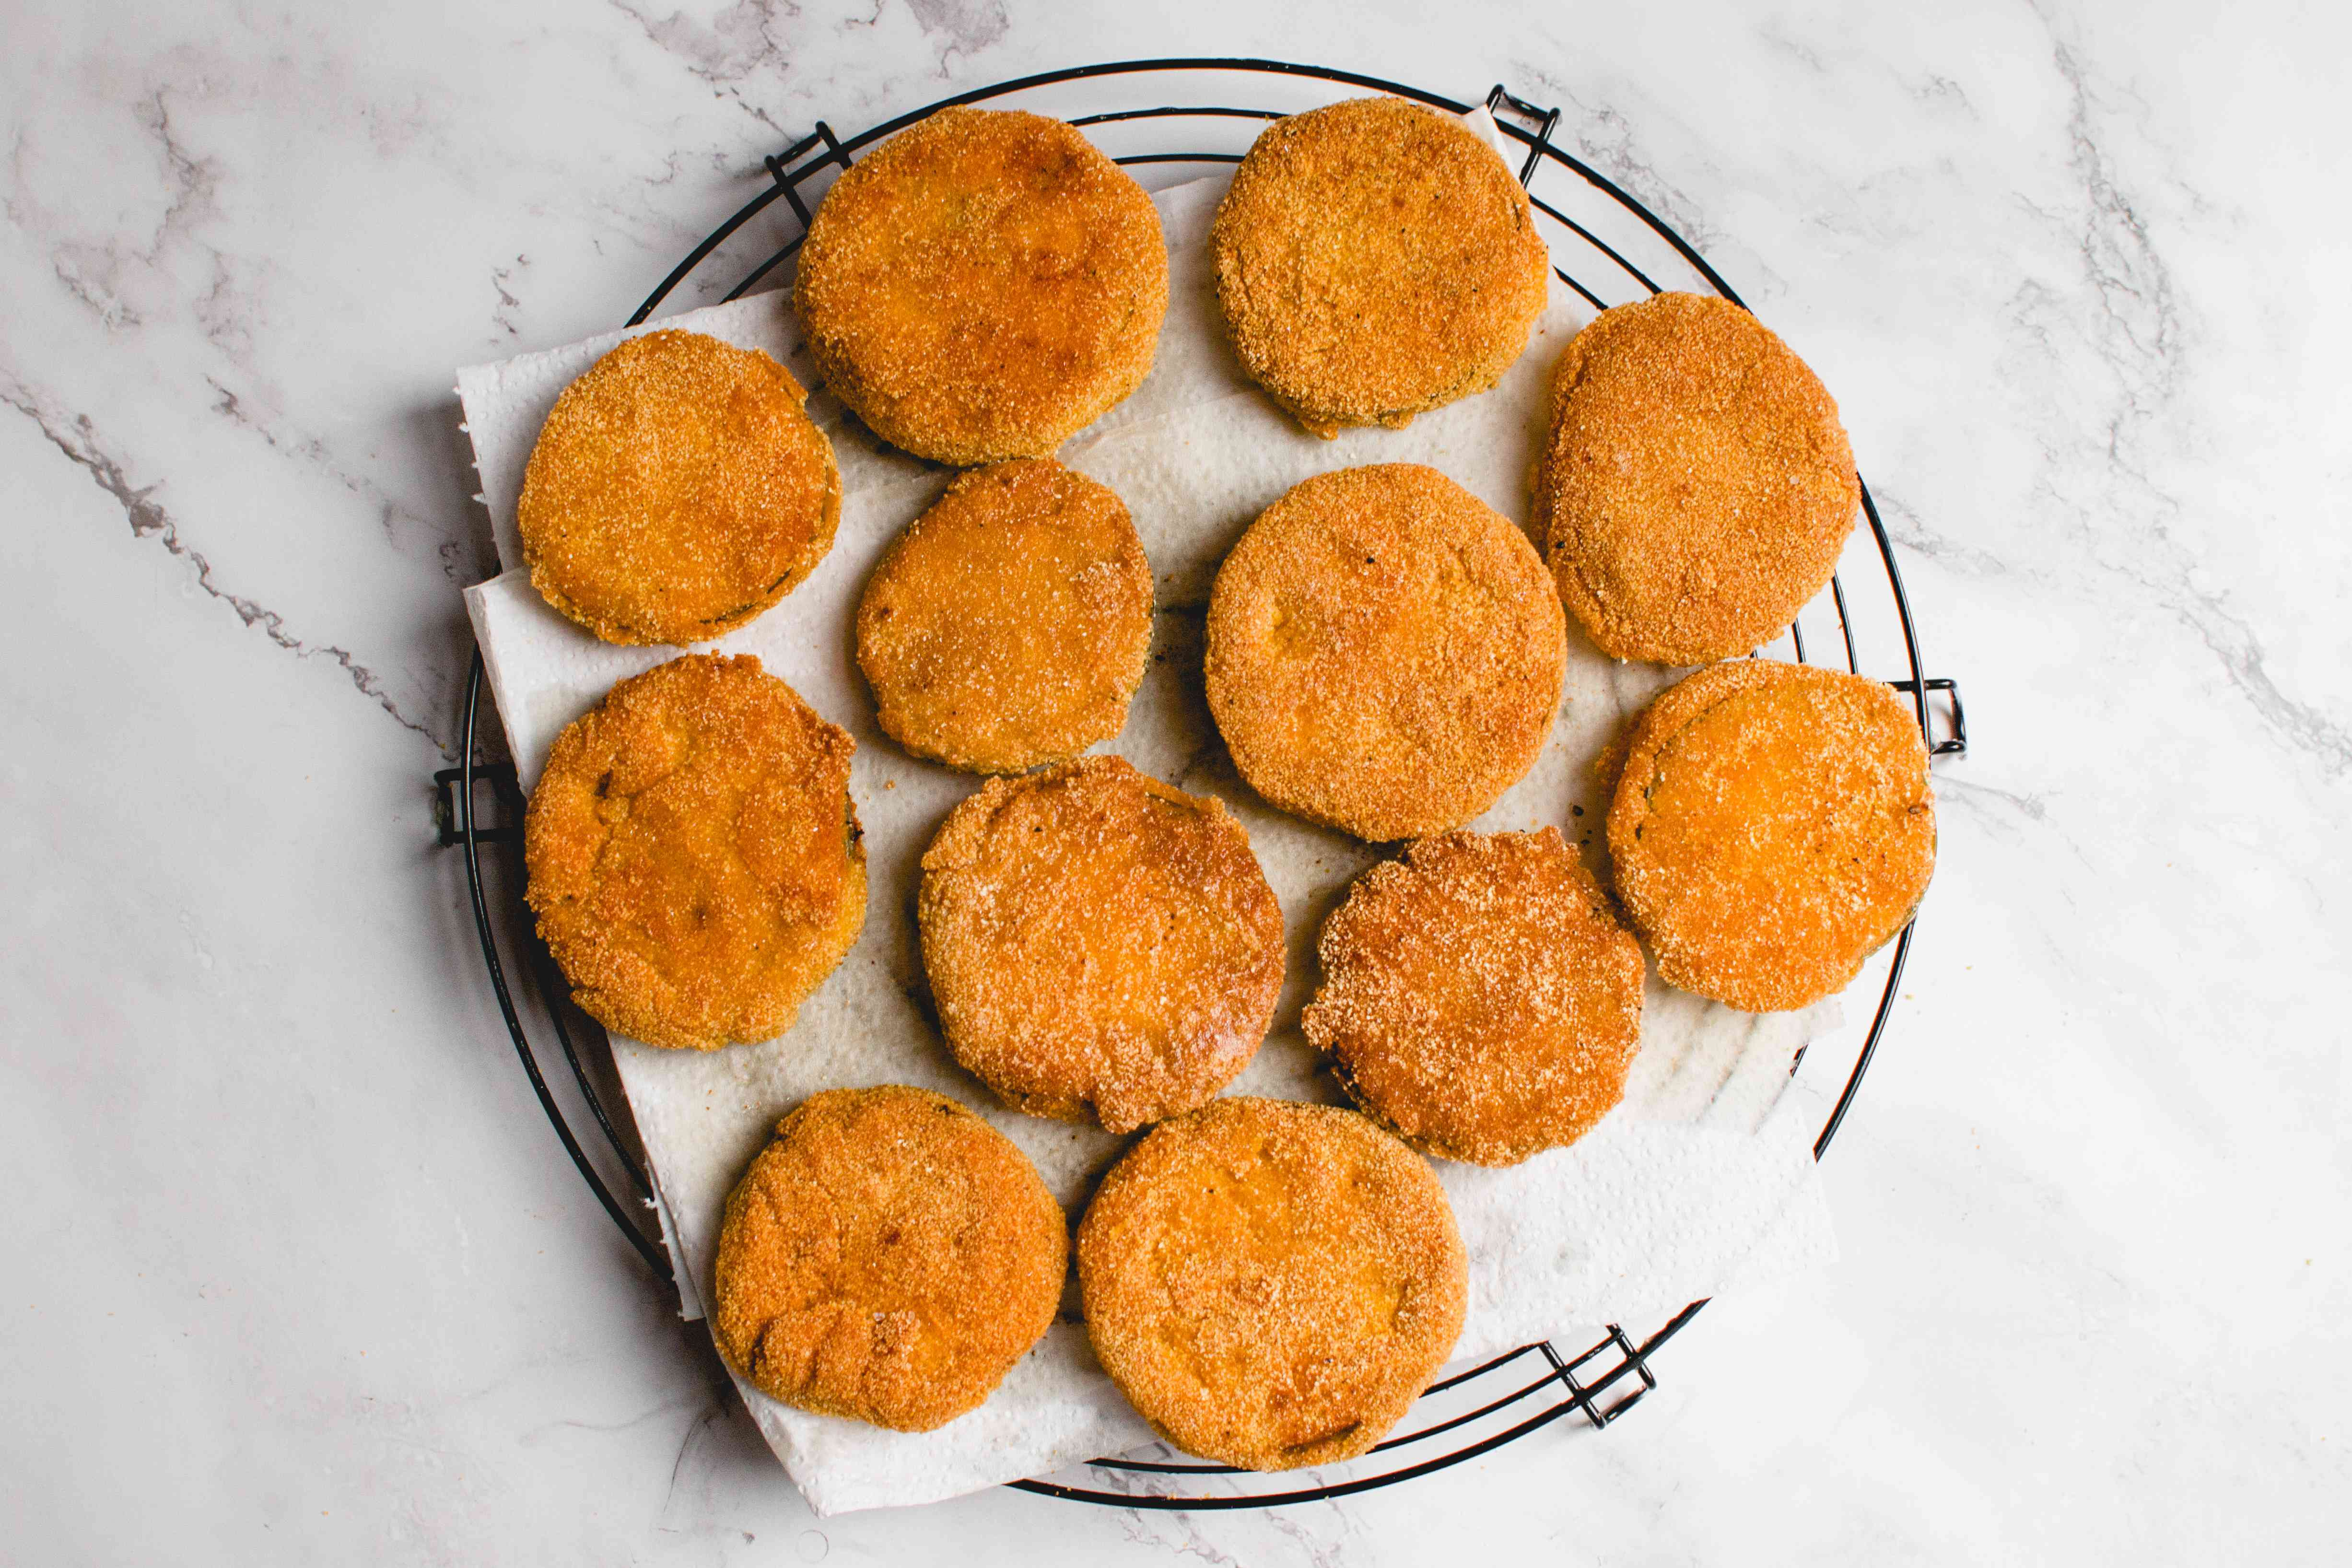 Classic Fried Green Tomatoes on paper towels and a cooling rack